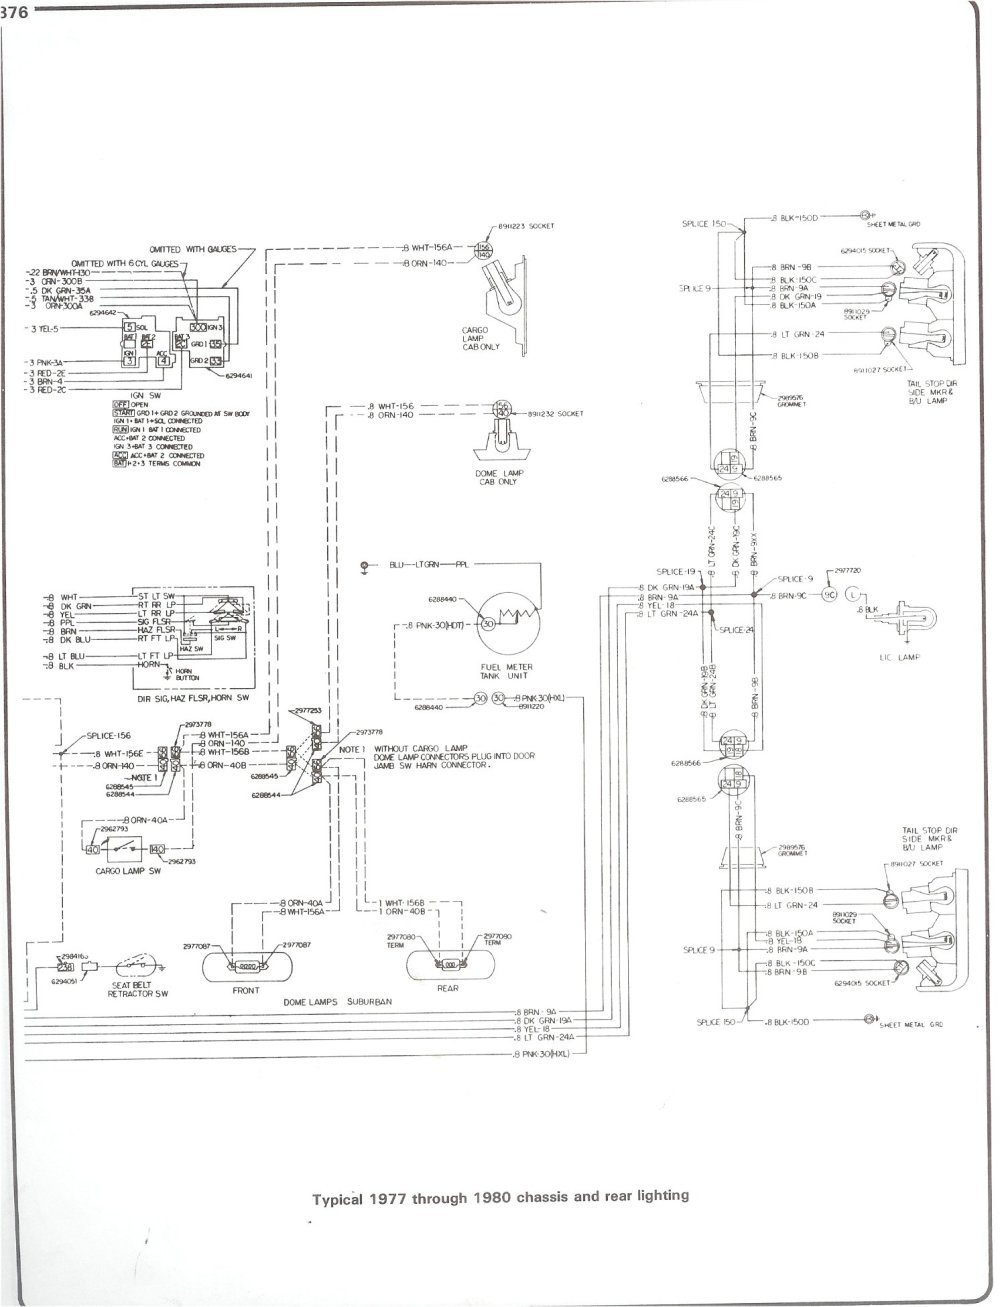 medium resolution of 77 80 chassis and rear lighting complete 73 87 wiring diagrams 77 80 chassis and rear lighting 1982 g30 van